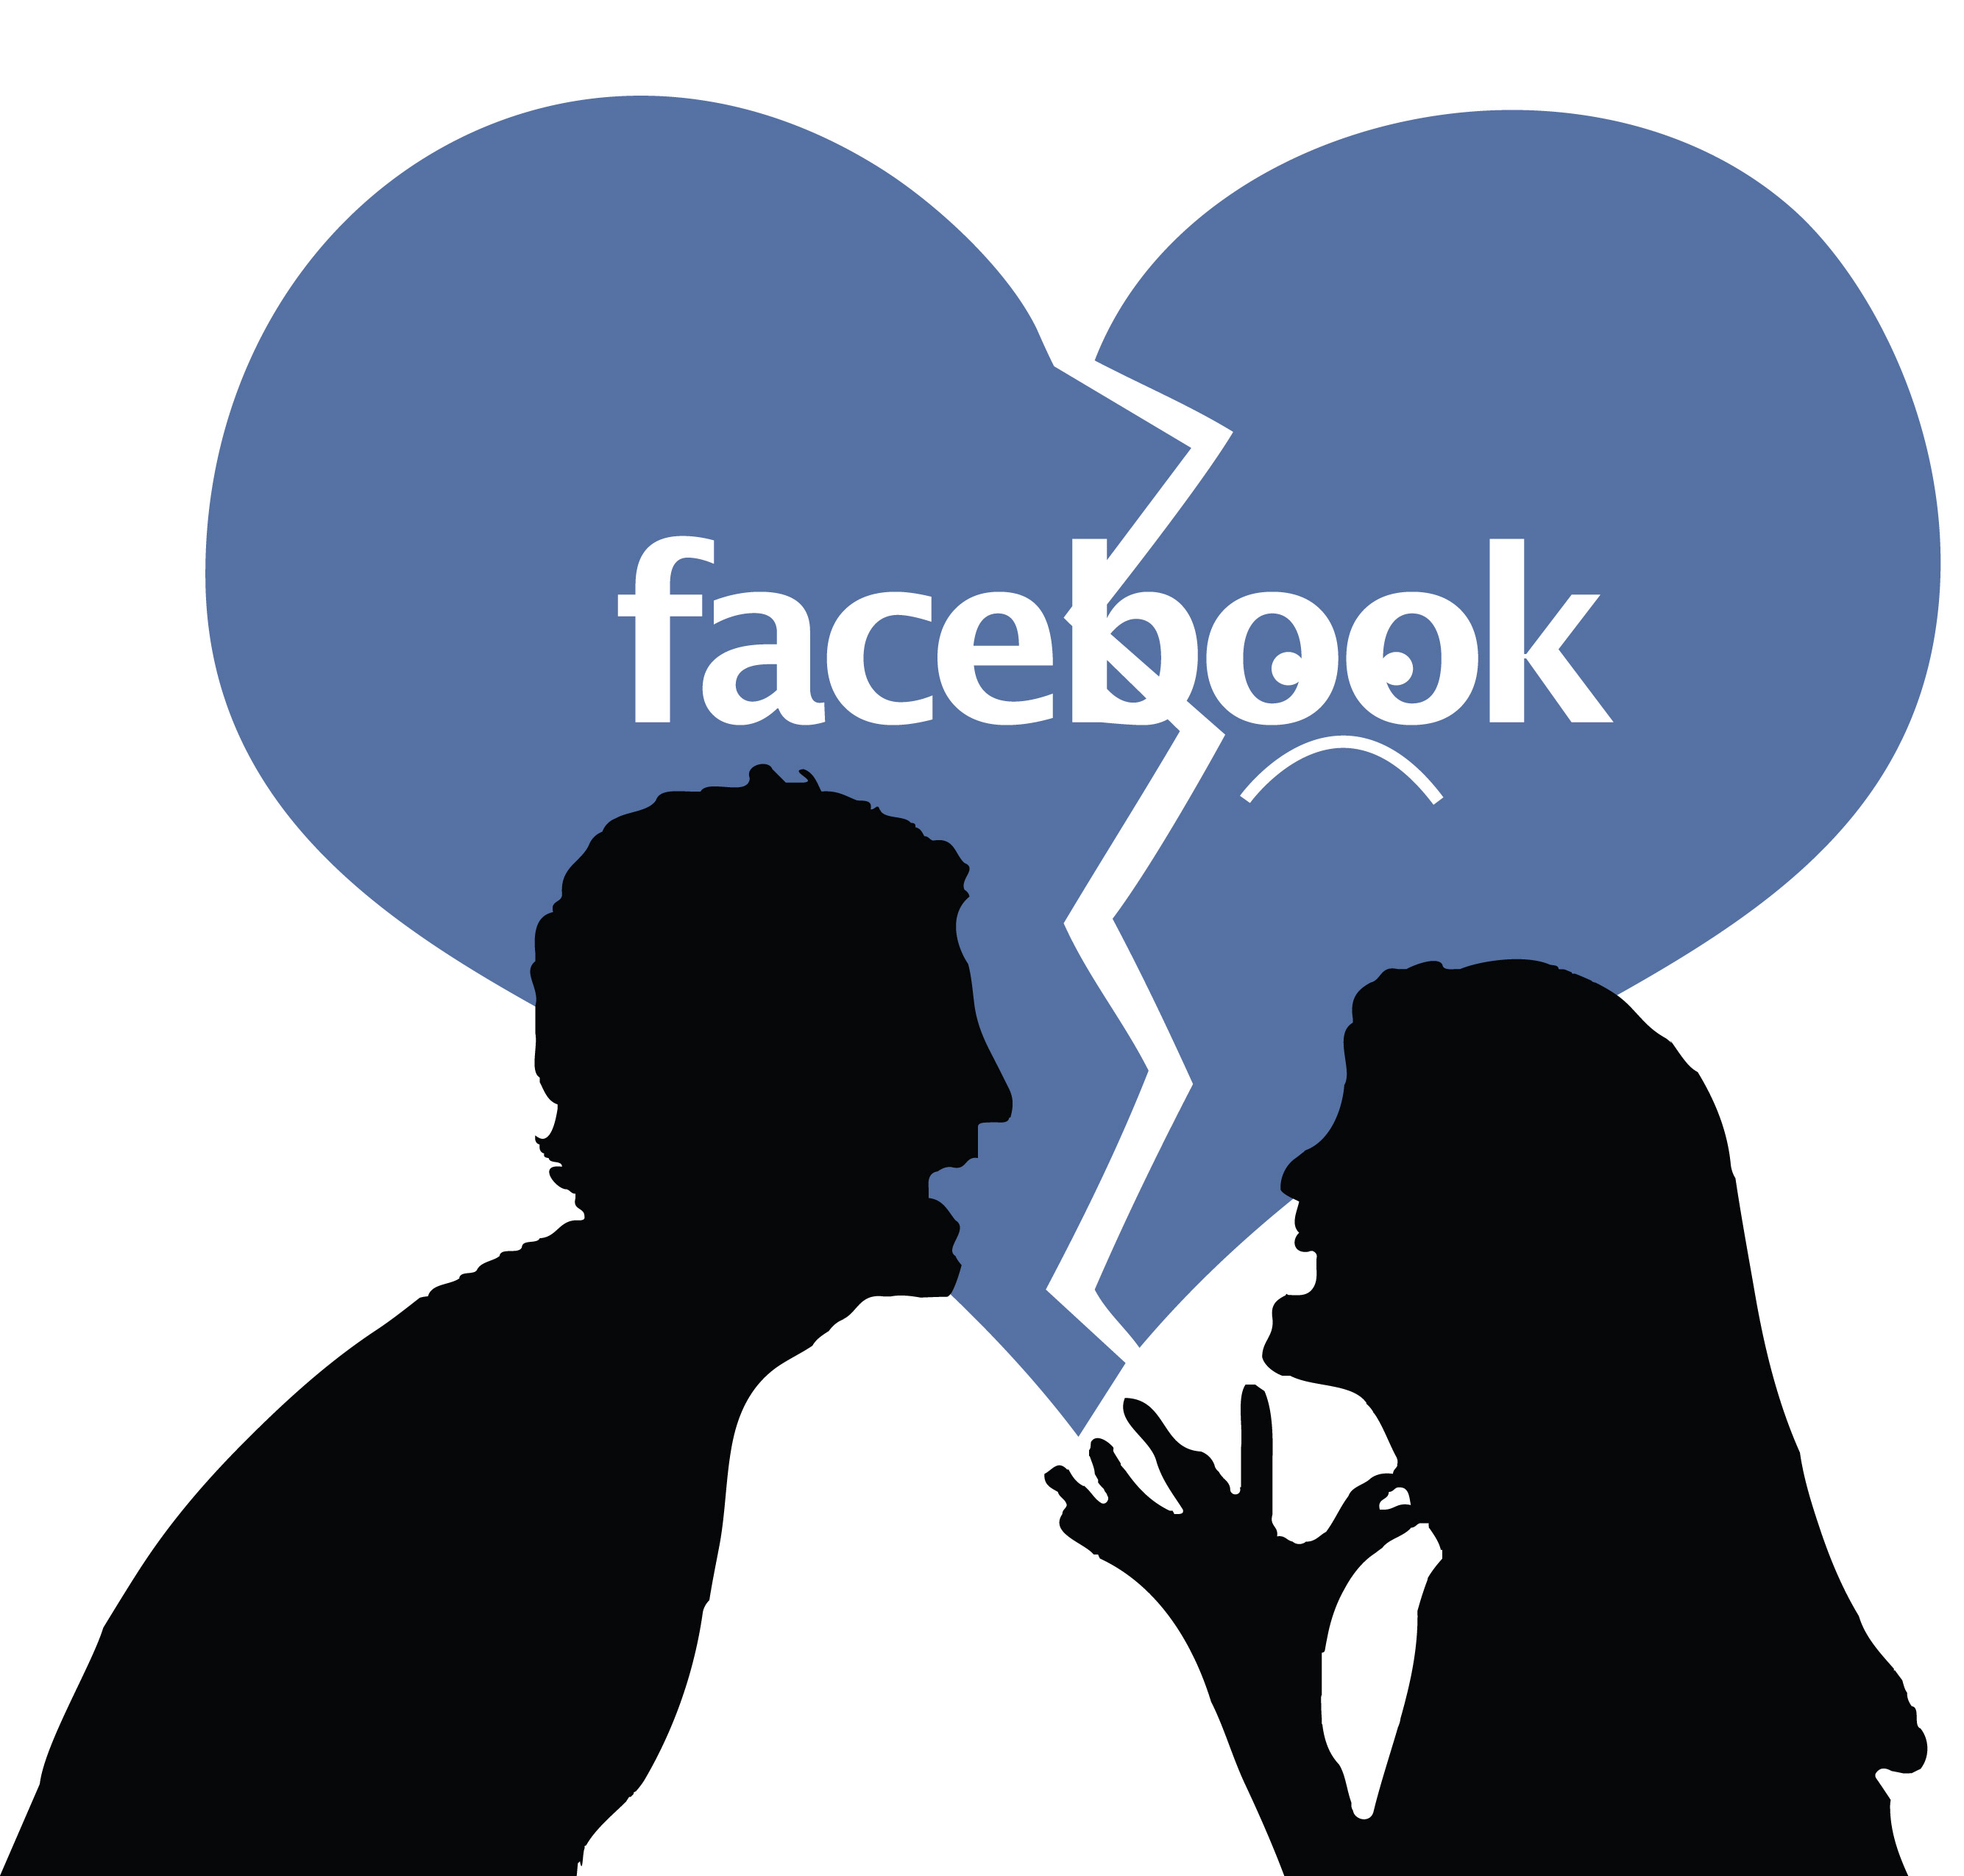 Is Facebook the demise of happily ever after?